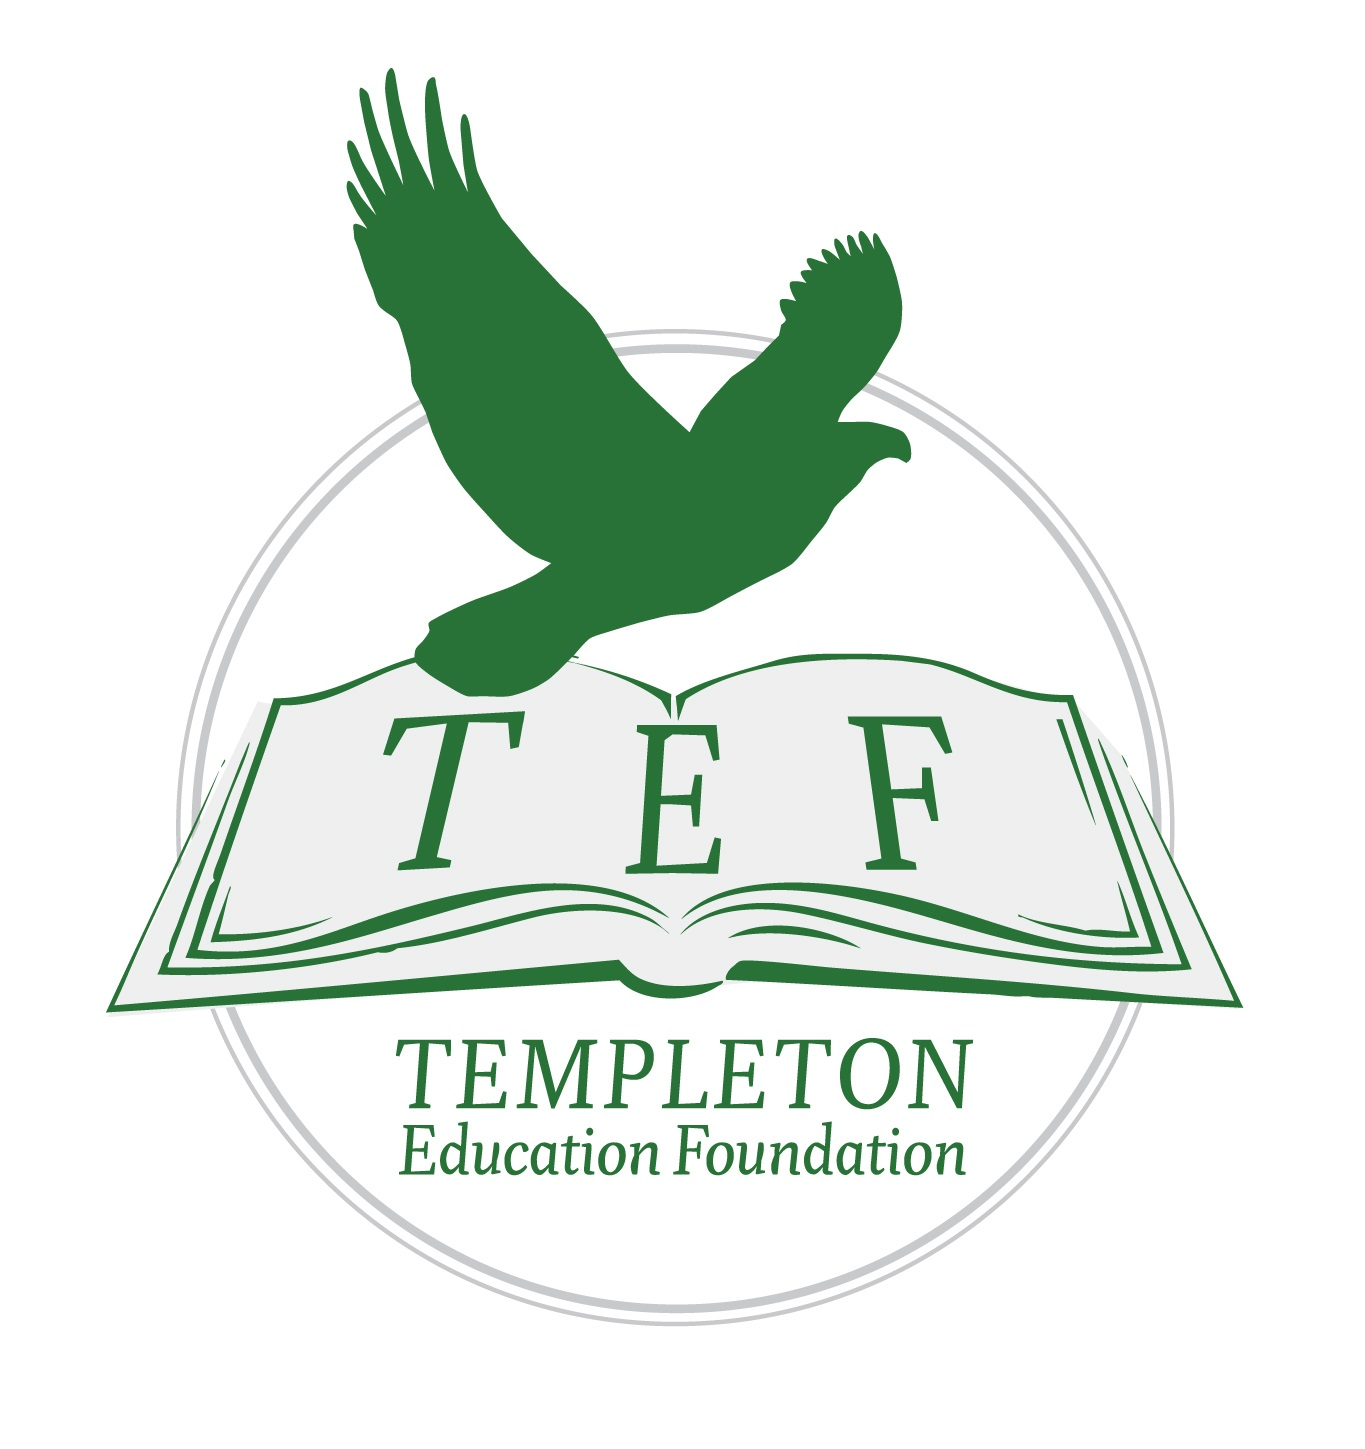 Templeton Education Foundation